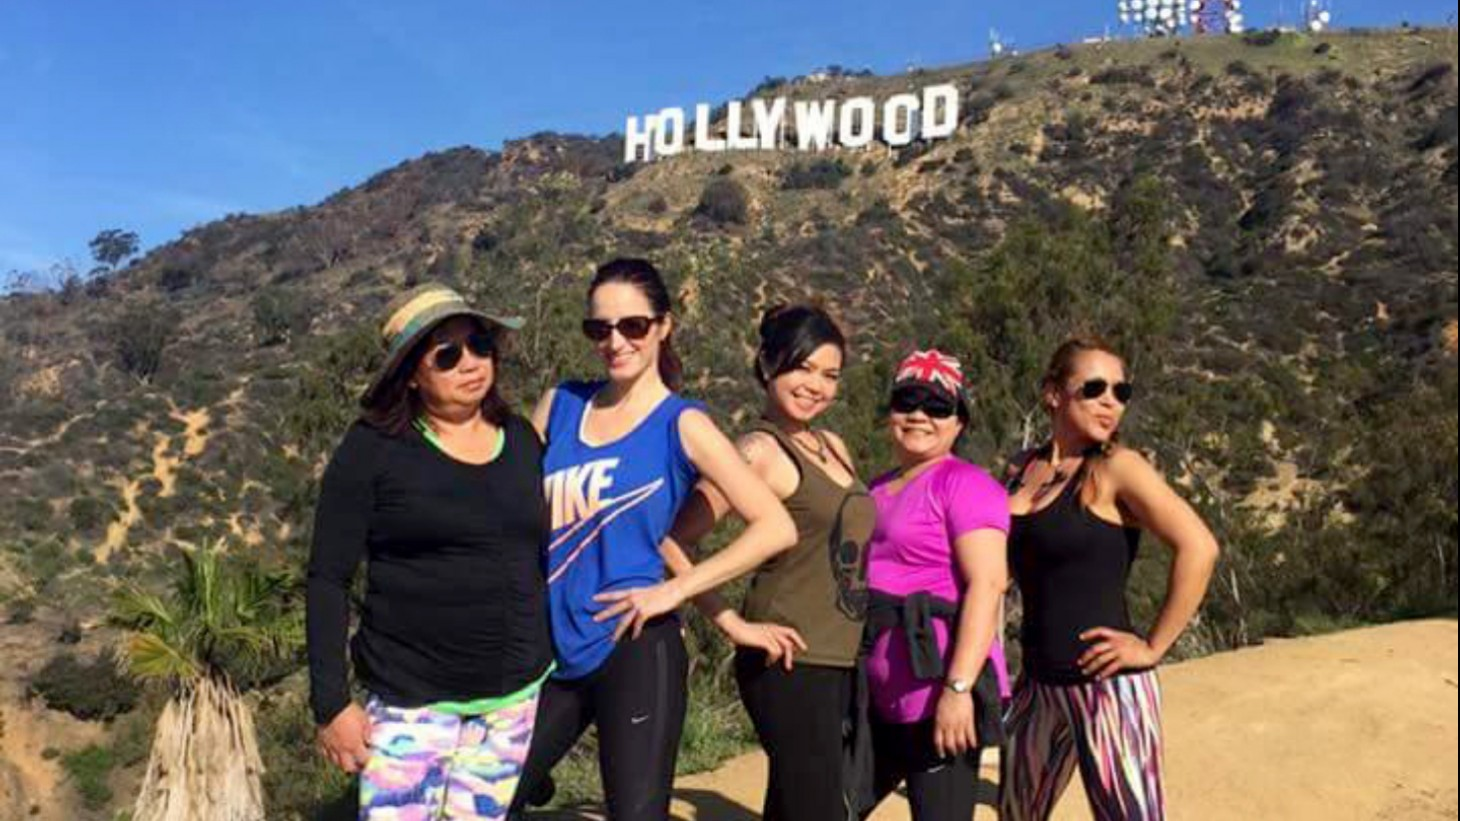 Team members pose with the Hollywood sign